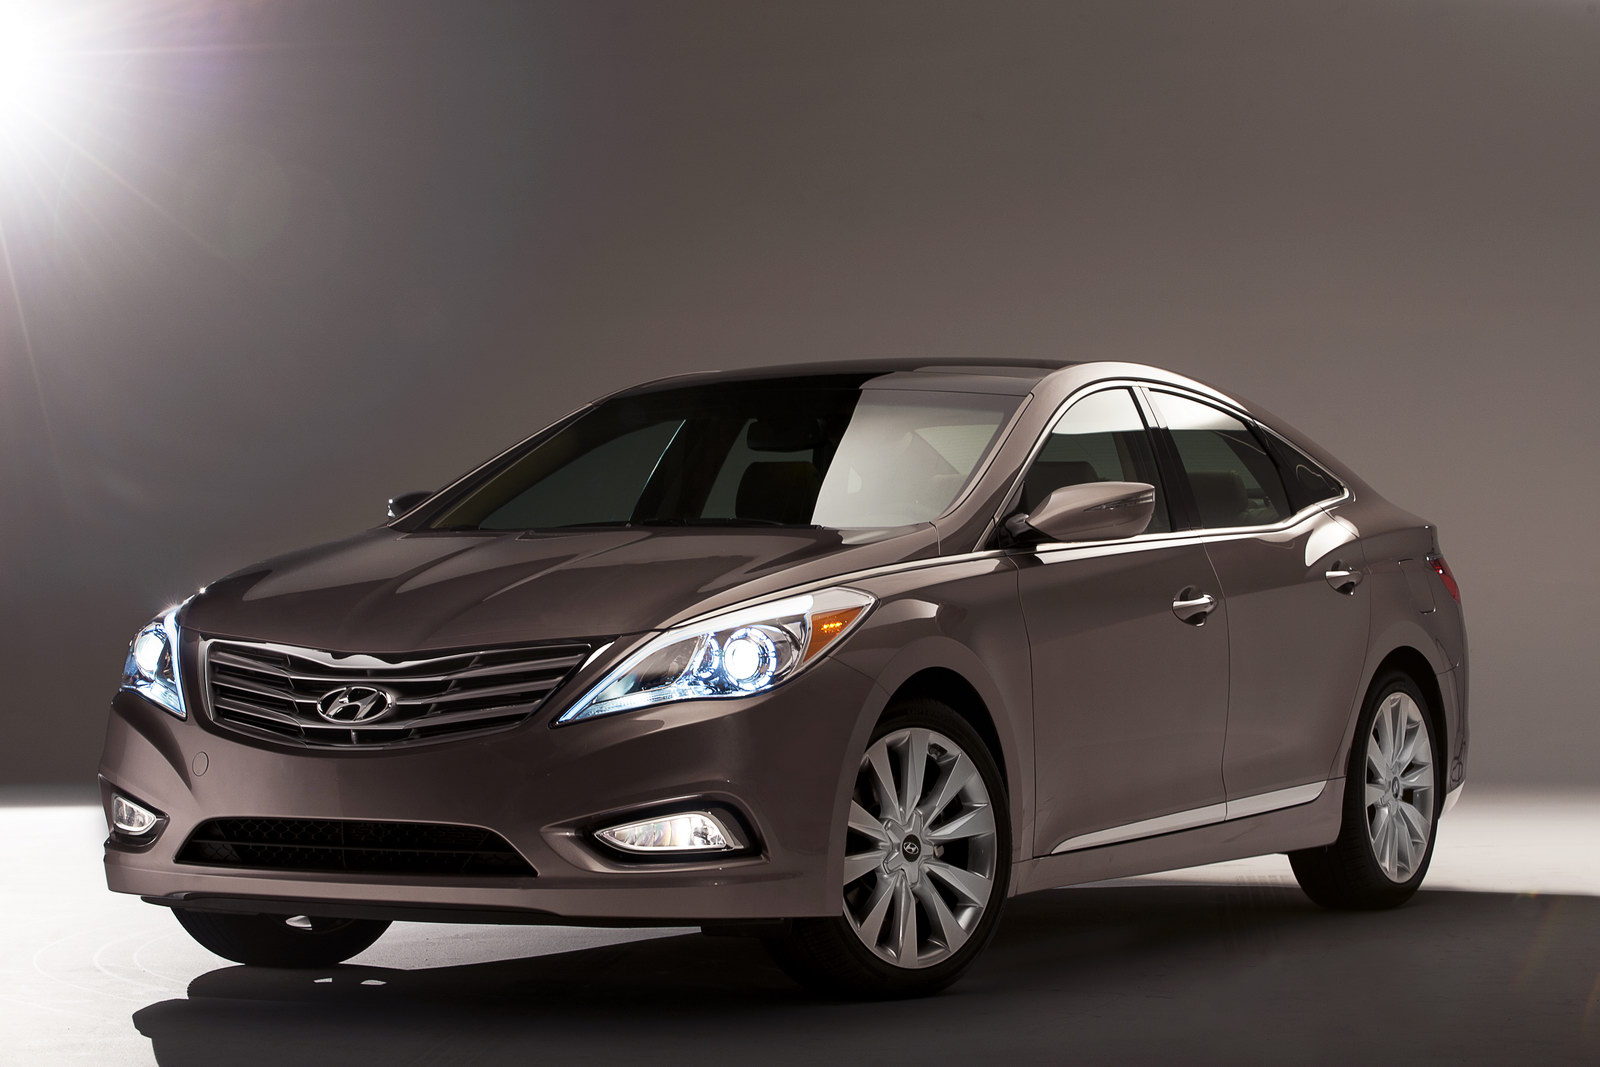 2012 Hyundai Azera Sedan 7 Newly Modified and Upgraded 2012 Hyundai Azera Sedan– A Review